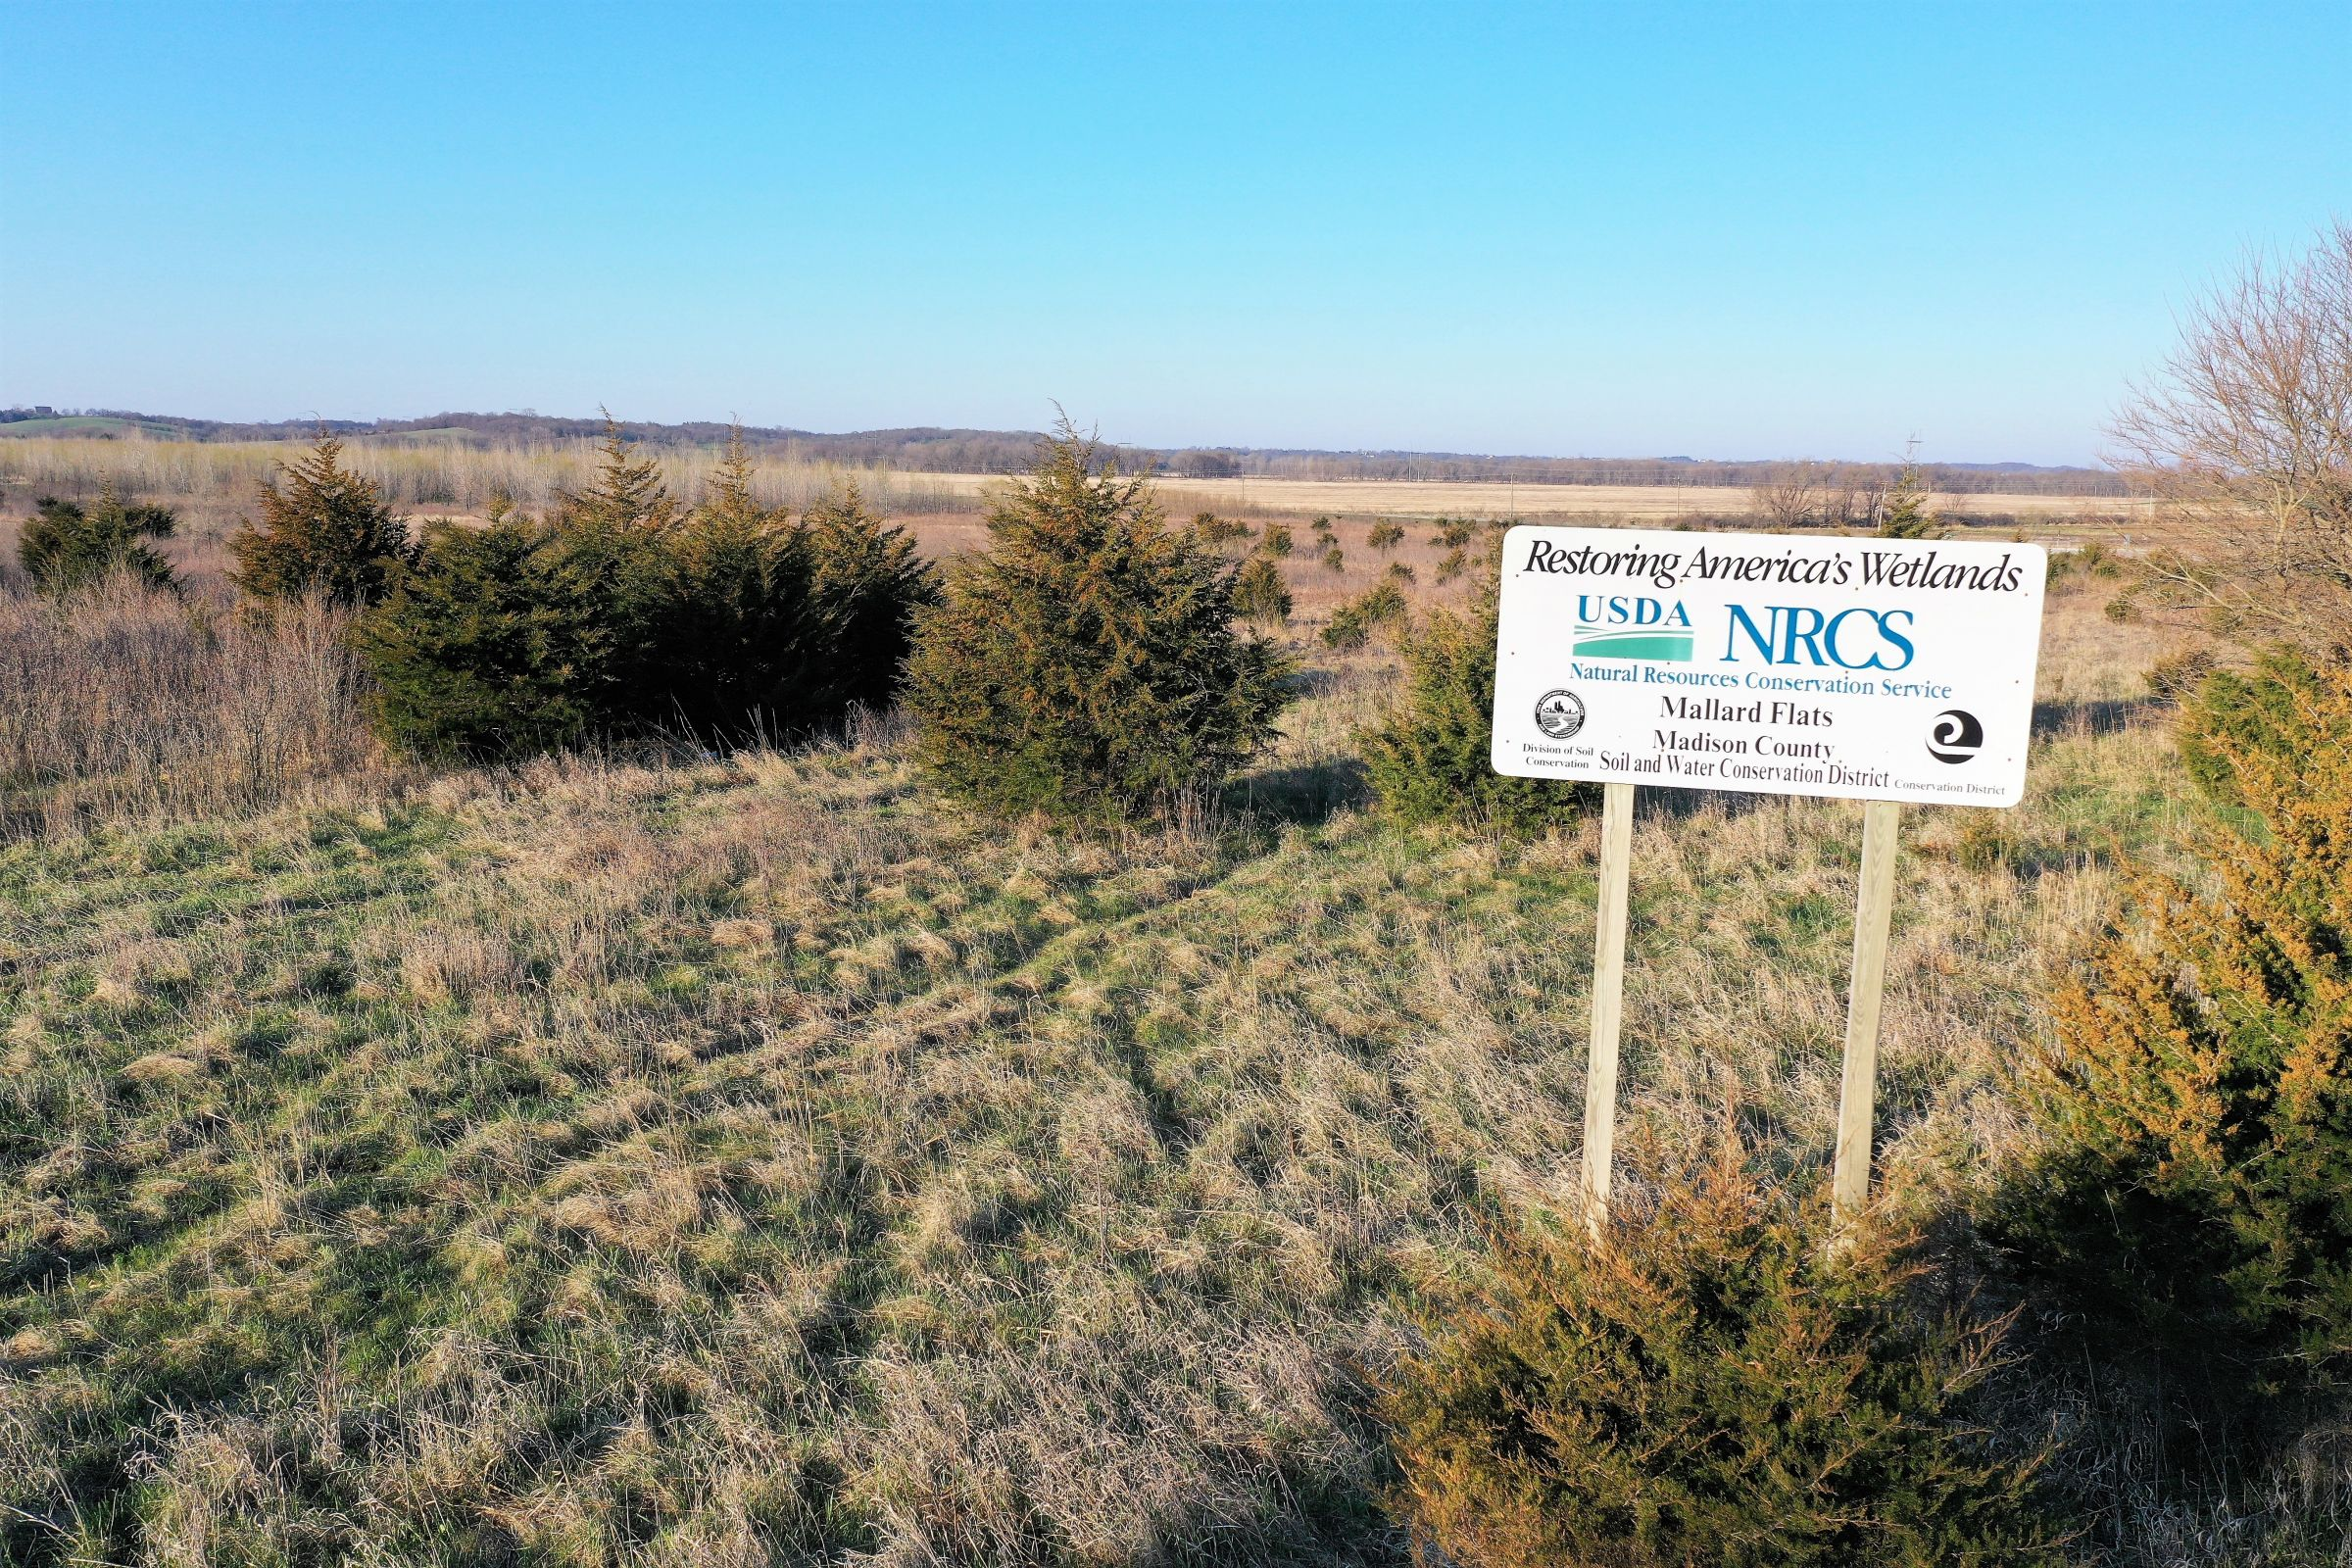 development-land-madison-county-iowa-267-acres-listing-number-15200-3-2020-10-06-184716.jpg